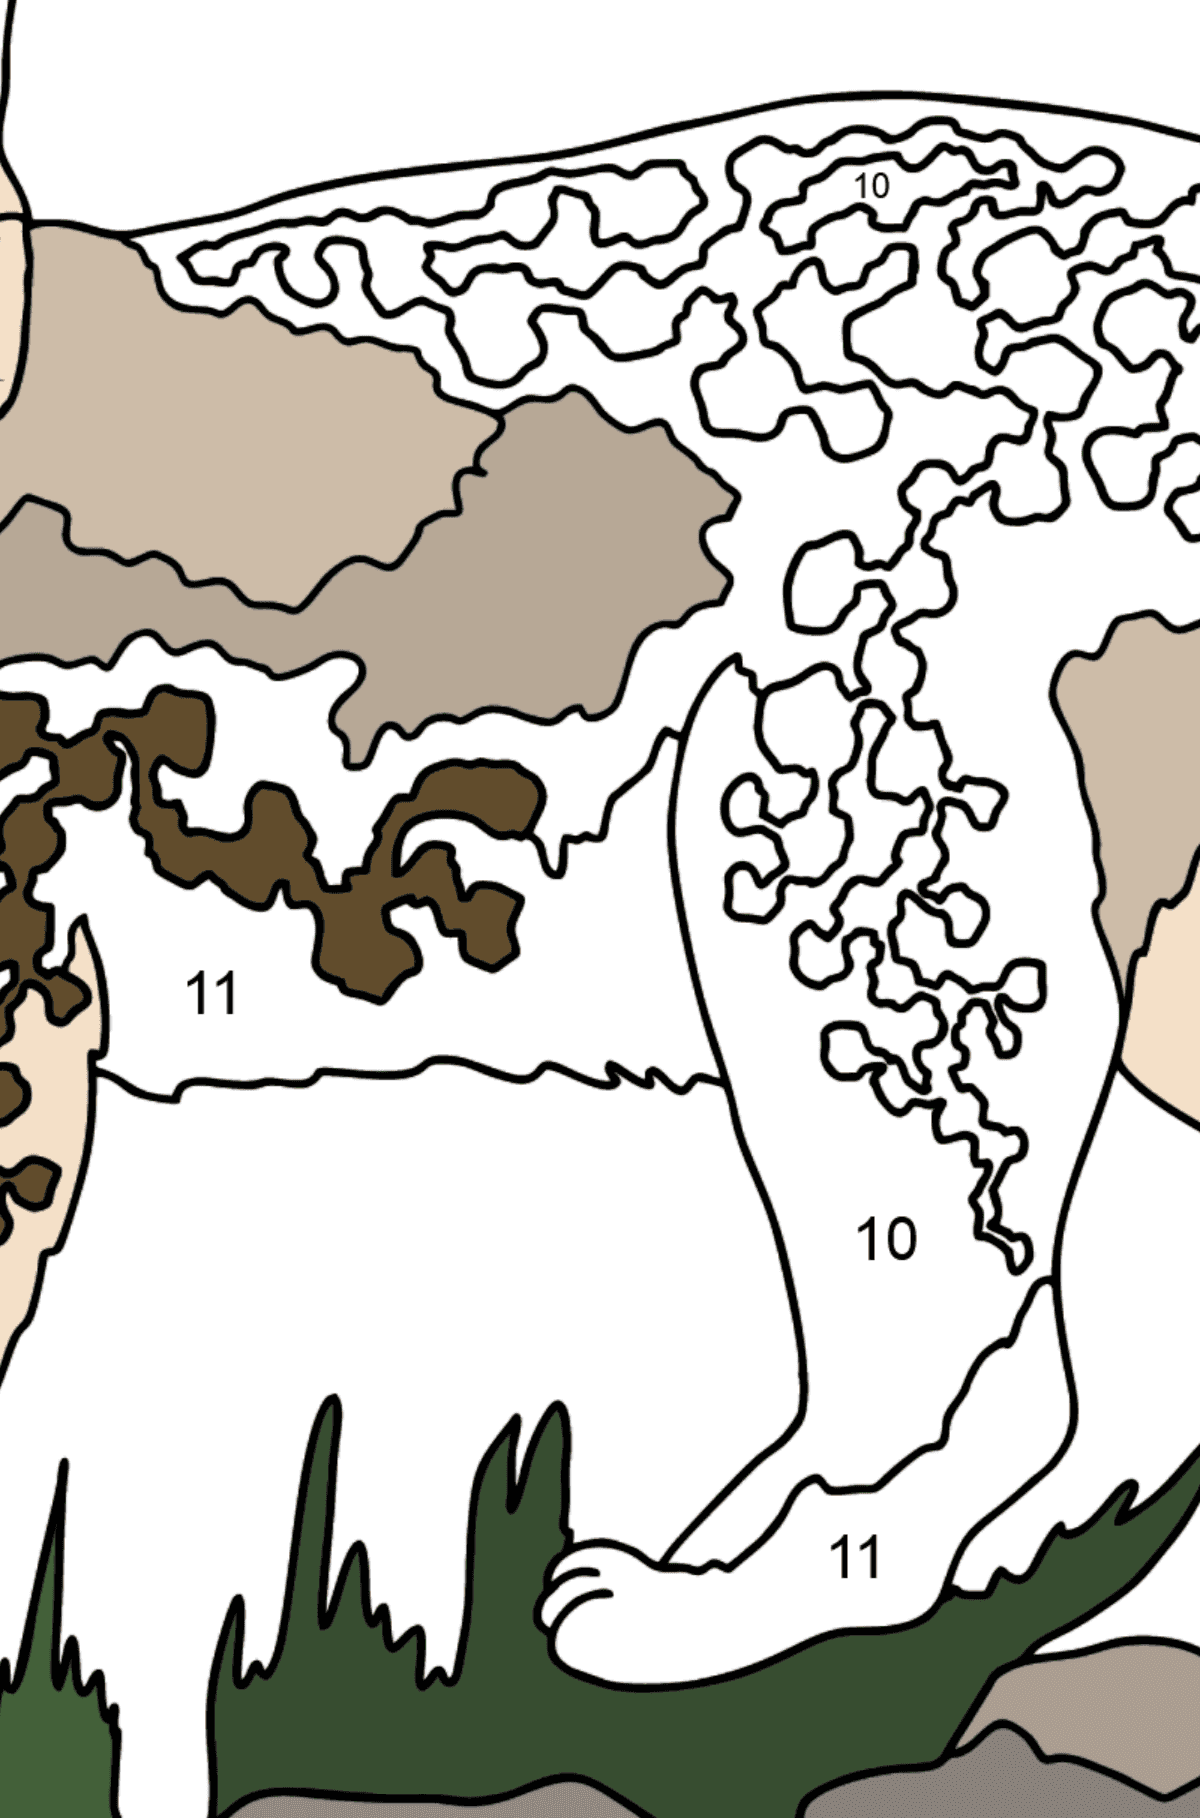 Coloring Page - A Lynx in the Forest - Coloring by Numbers for Kids